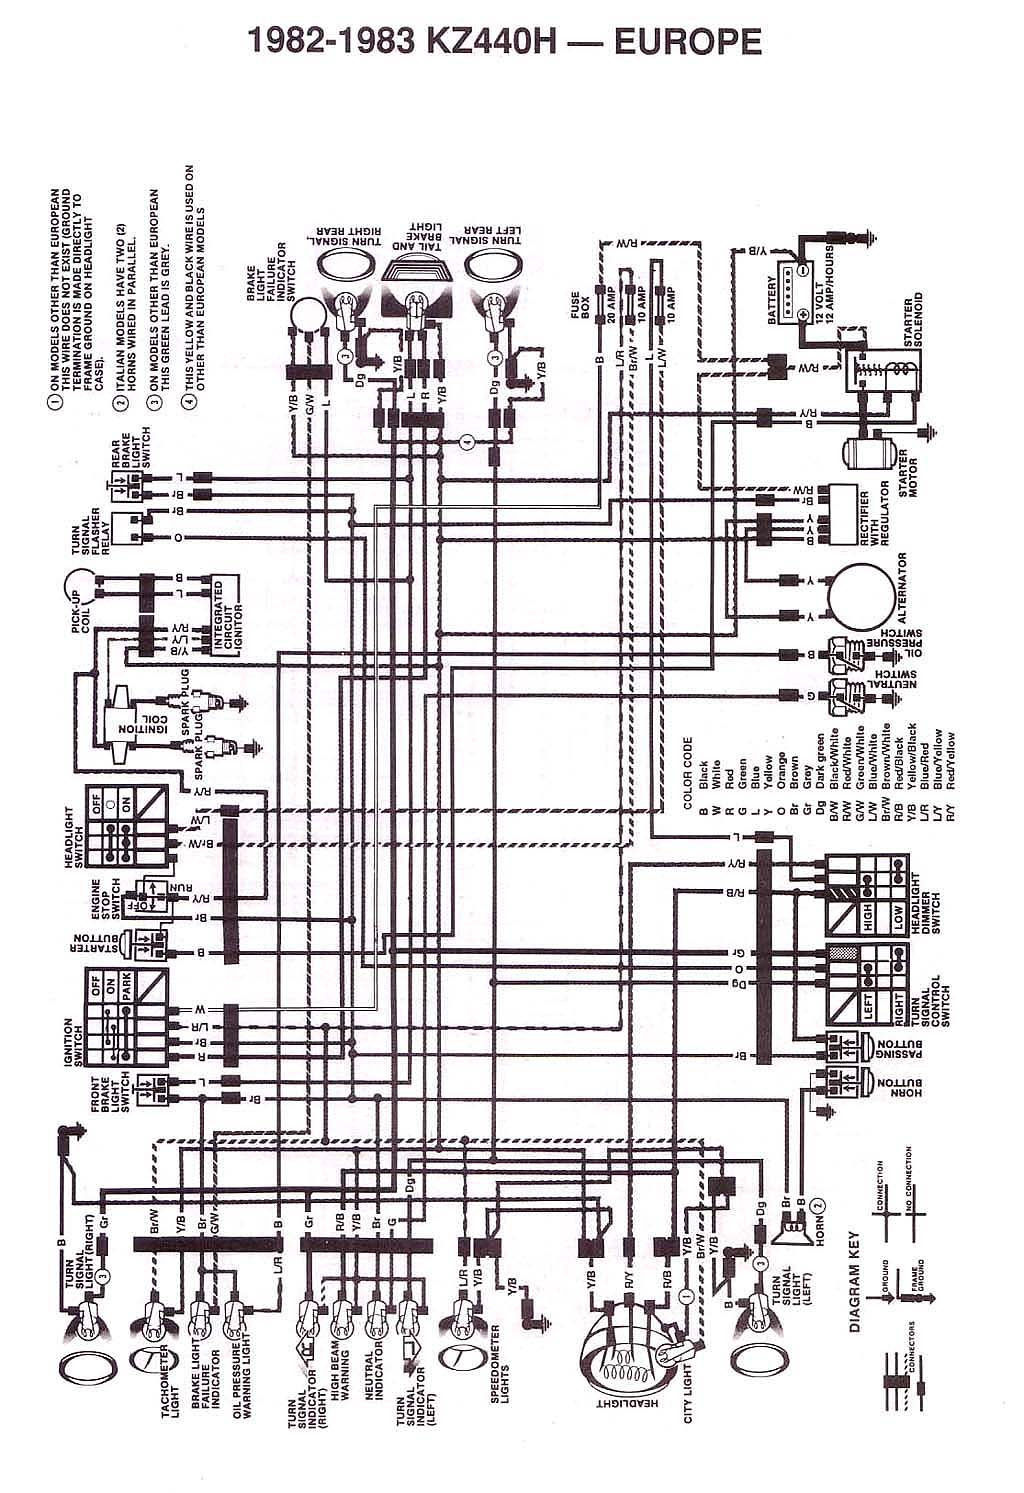 1978 z400 b1 wiring diagram european colour